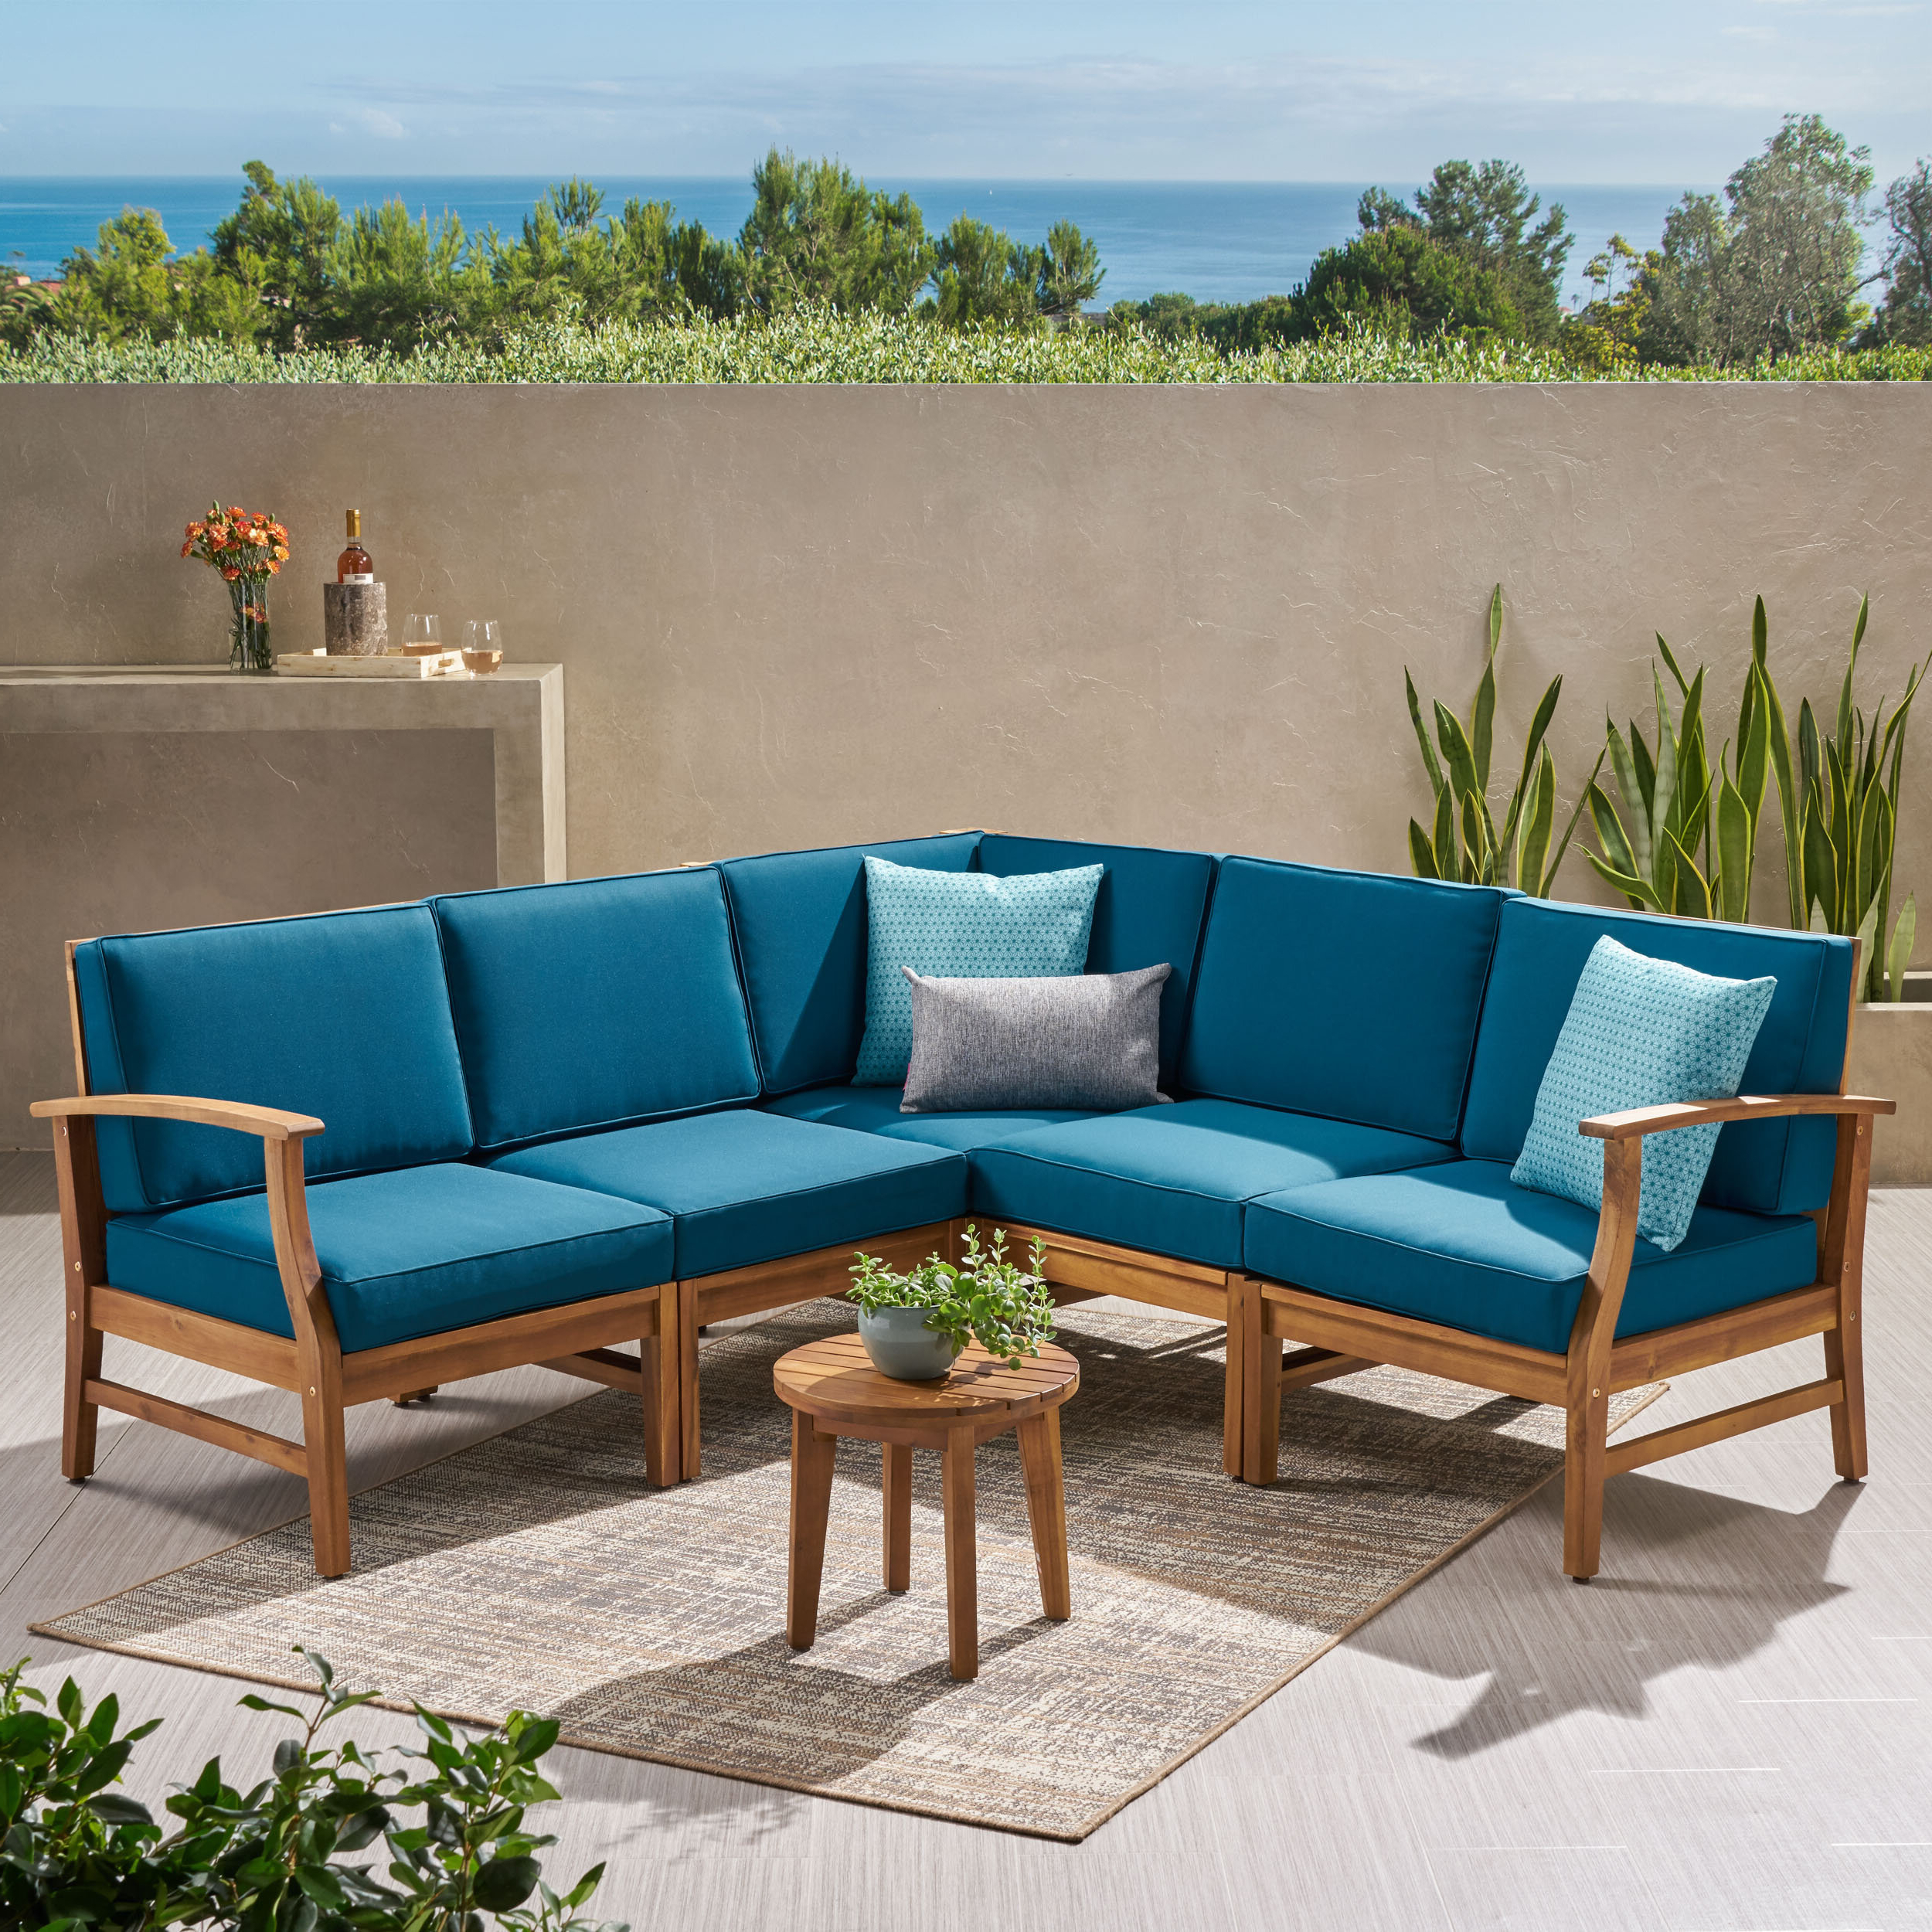 Well Liked Antonia Teak Patio Sectional With Cushions With Regard To Antonia Teak Patio Sectionals With Cushions (Gallery 2 of 25)